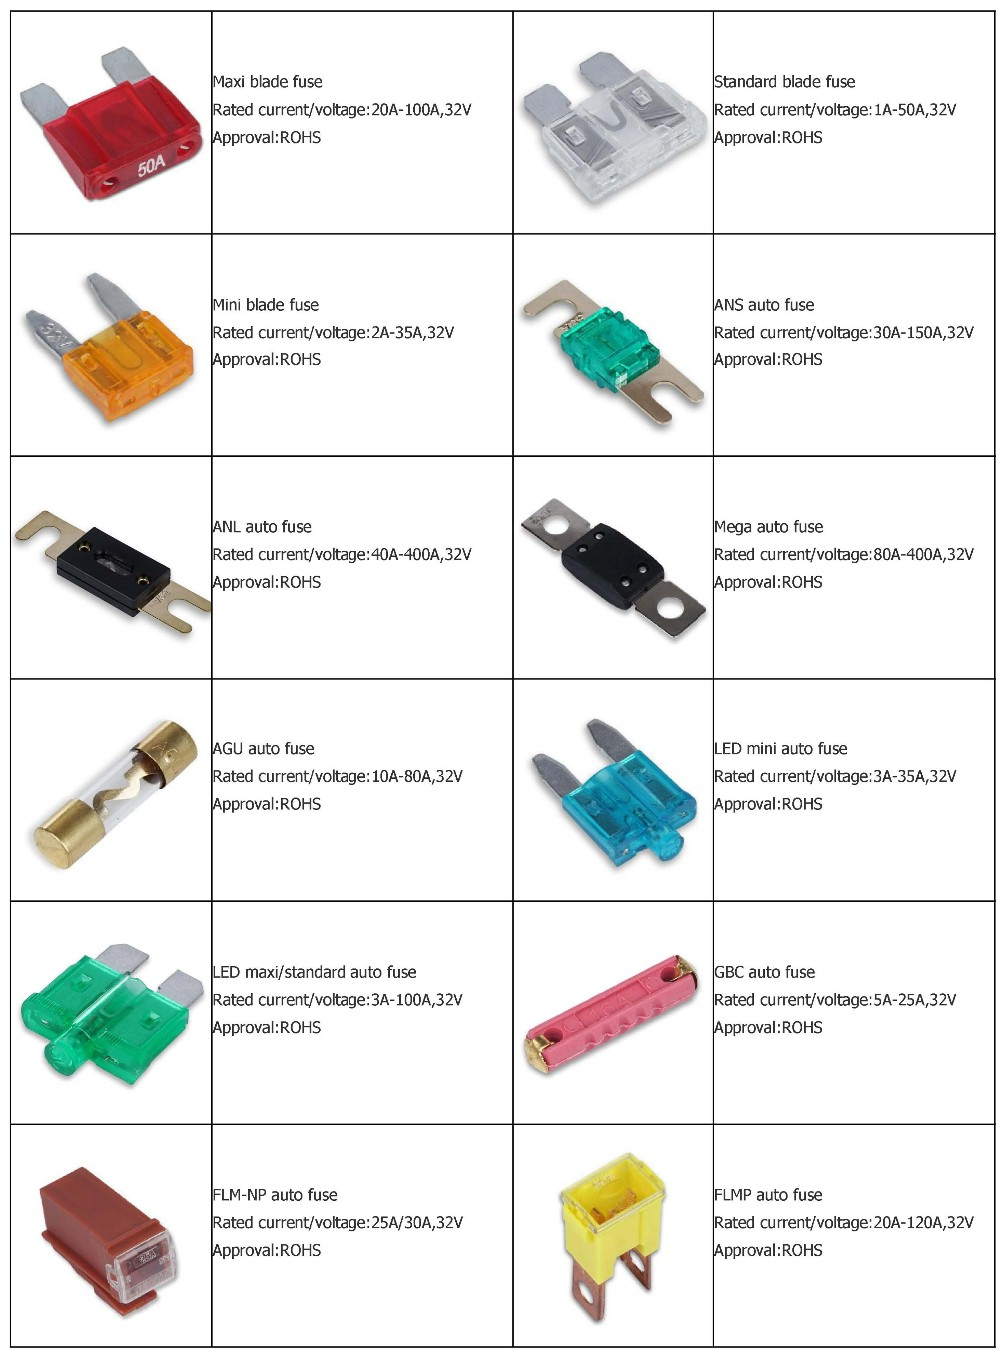 How To Identify Blade Fuses also Medium Size Plug In Auto Fuse 60033422134 in addition Size Generator Need moreover File Chart ie3 abseffex besides 14027 85. on standard fuse sizes chart